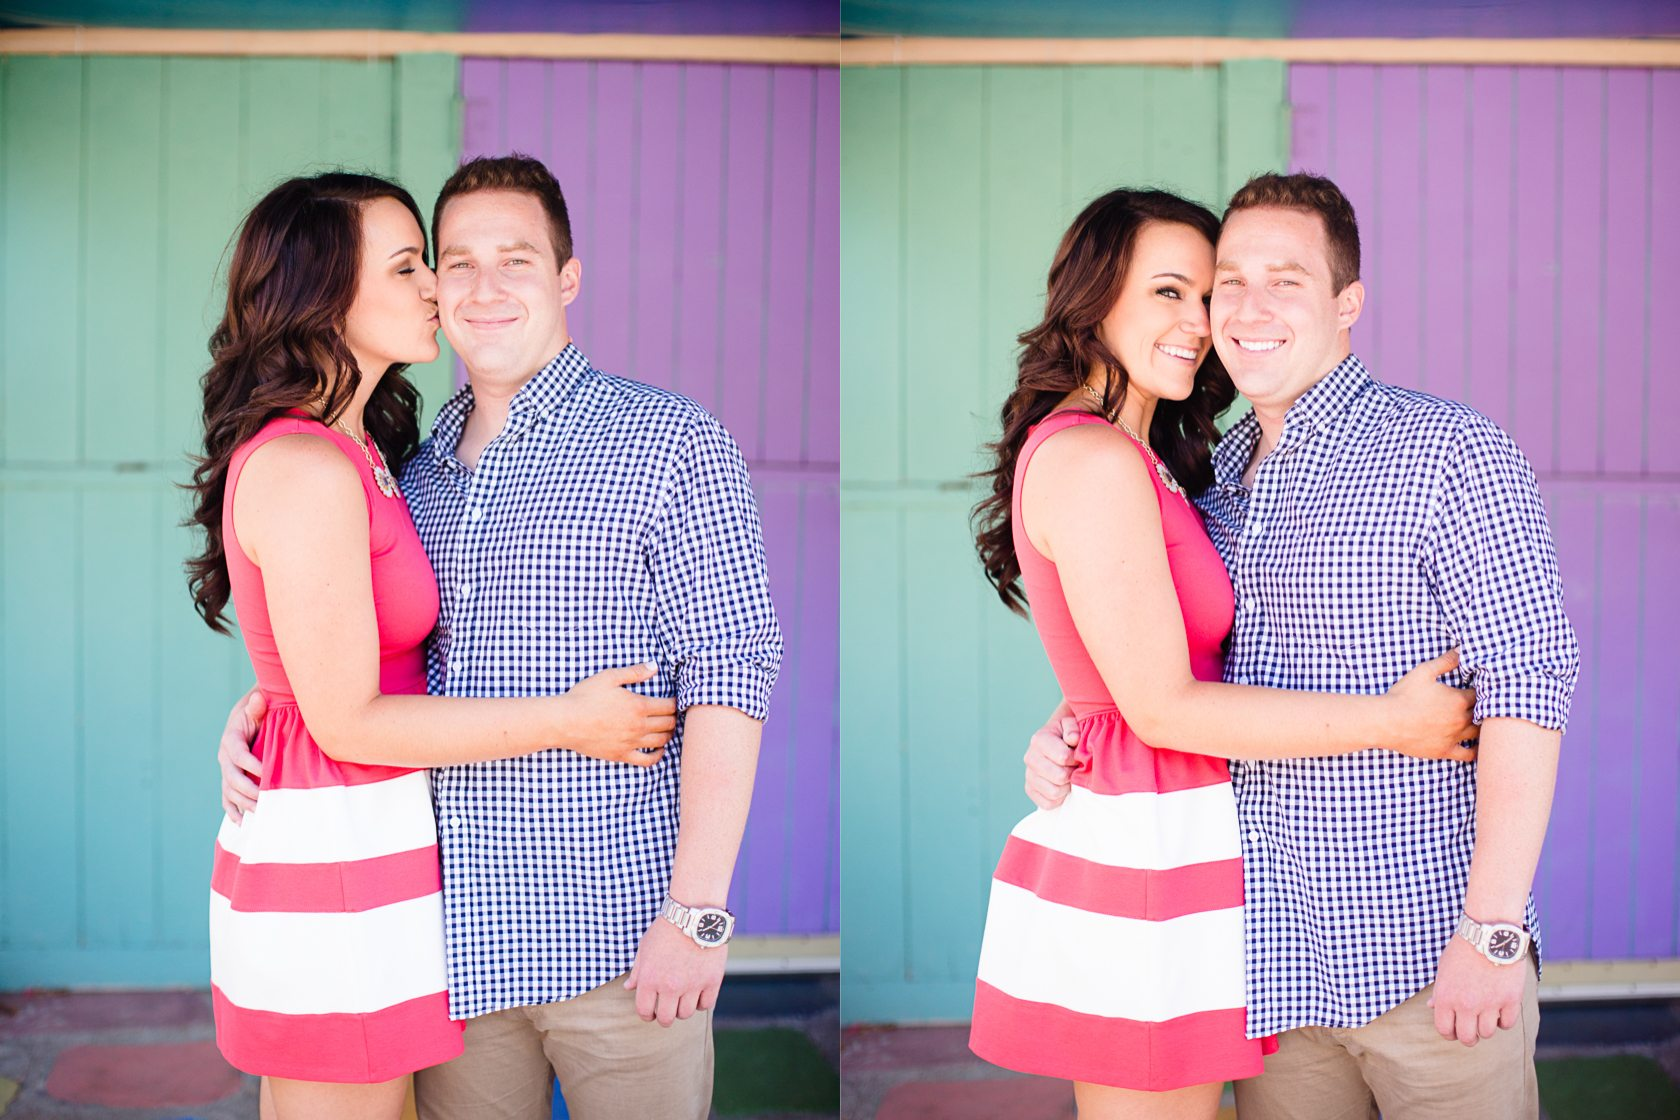 Colorful_San_Diego_Engagement_05.jpg